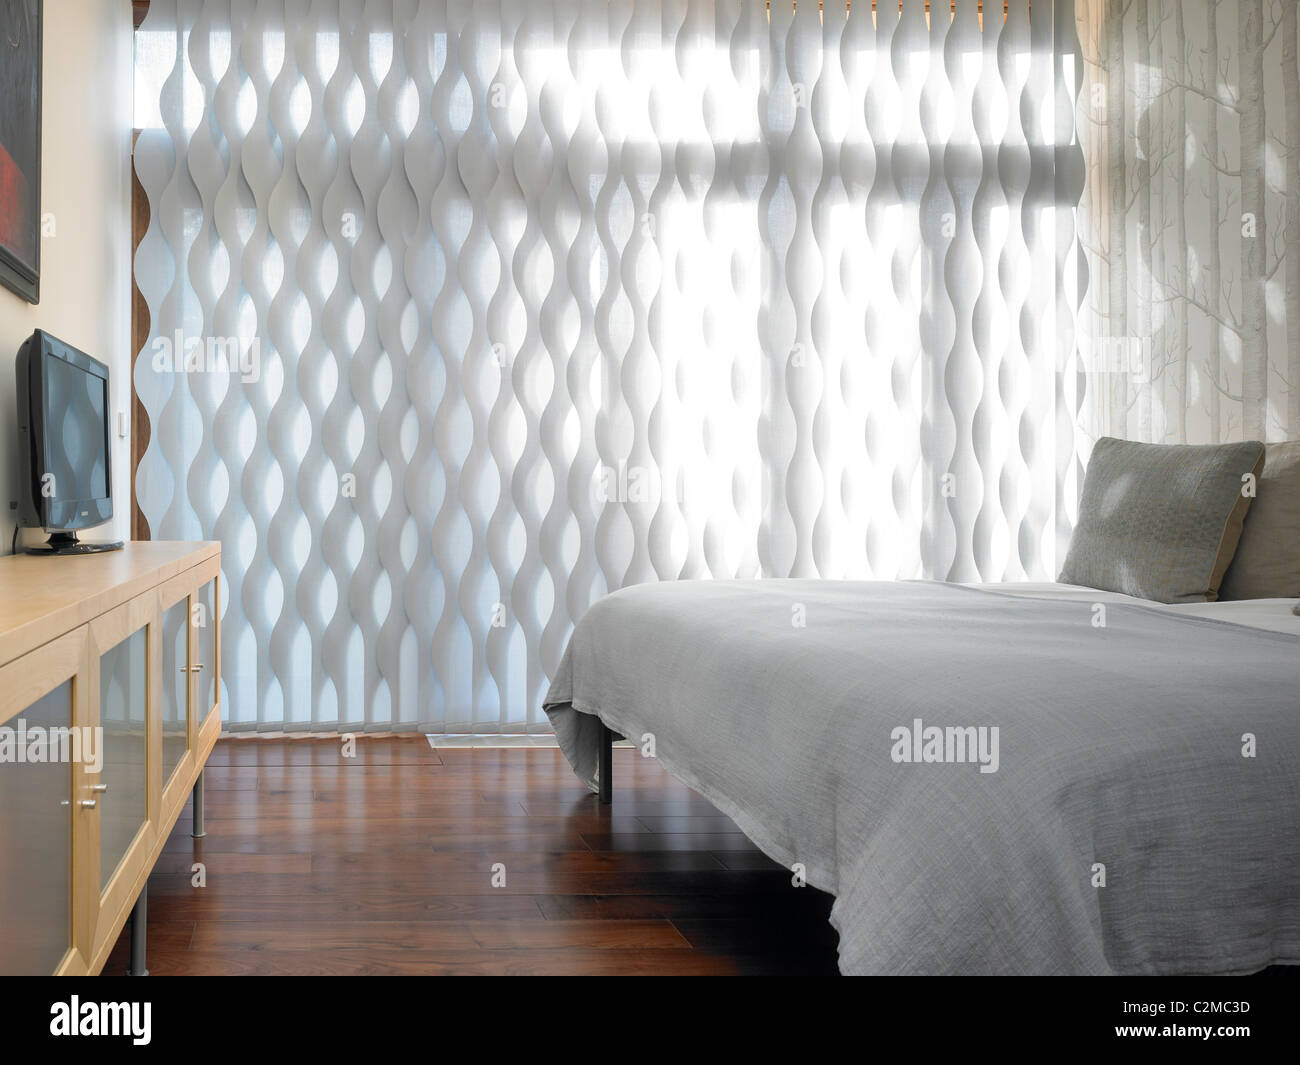 trends on roof inside curtains with uncategorized a for tin image hot italianhouse windows and astonishing cat popular sxs house curtain